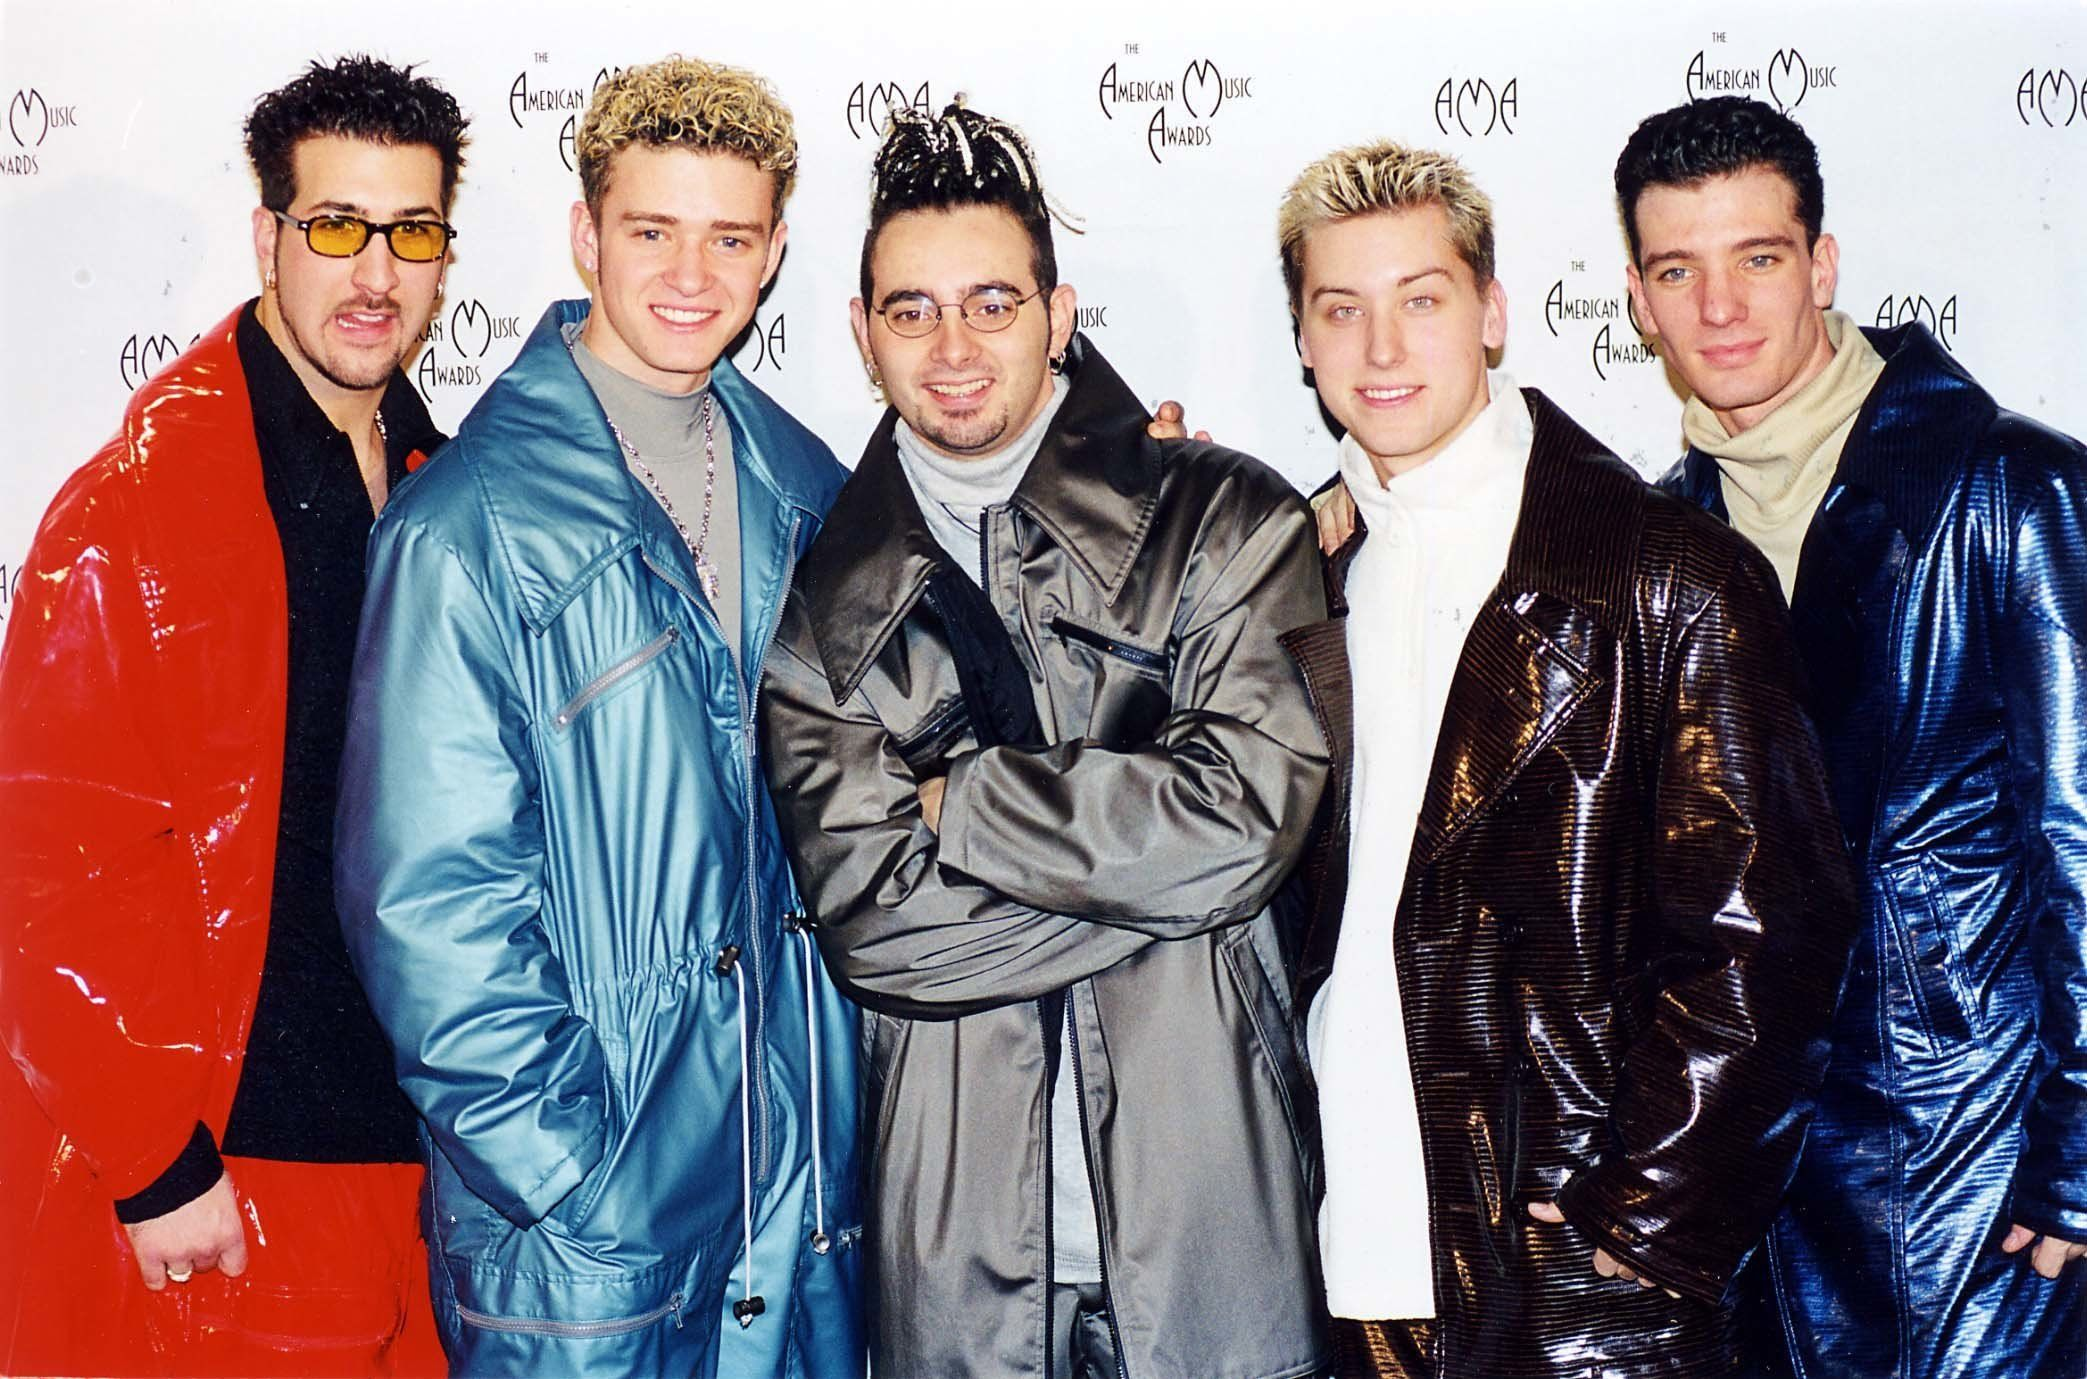 Joey Fatone, Justin Timberlake, Chris Kirkpatrick, Lance Bass and JC Chasez of n' Sync   (Photo by Jeff Kravitz/FilmMagic)